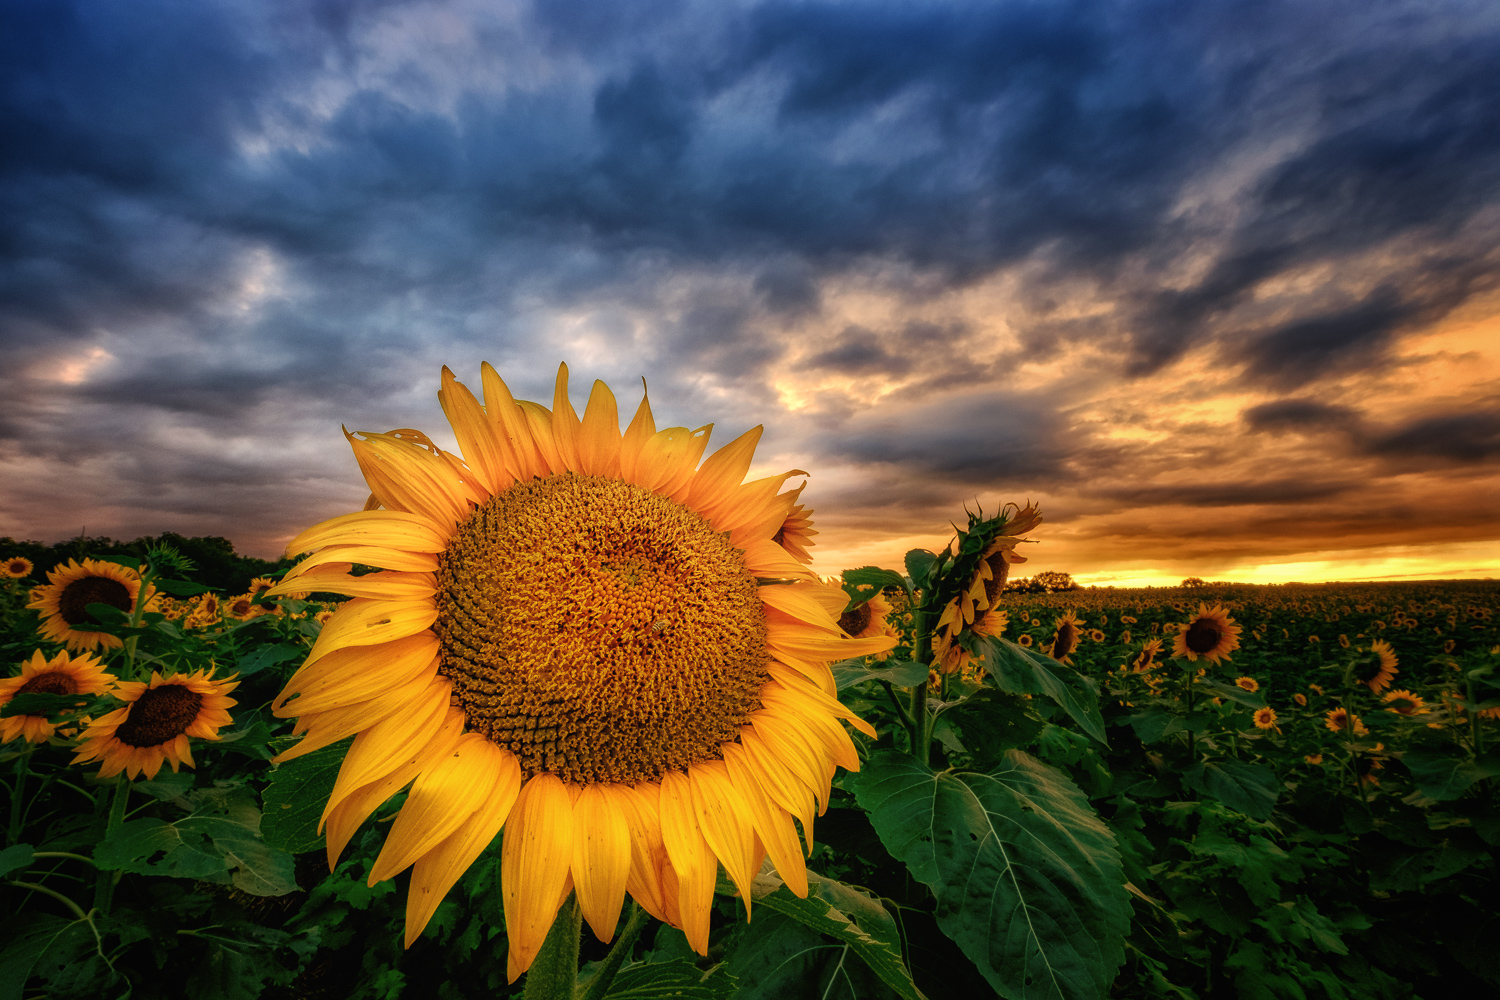 """The Bright Side"", a sunset capture at Grinter Sunflower Farms near Lawrence, Kansas."